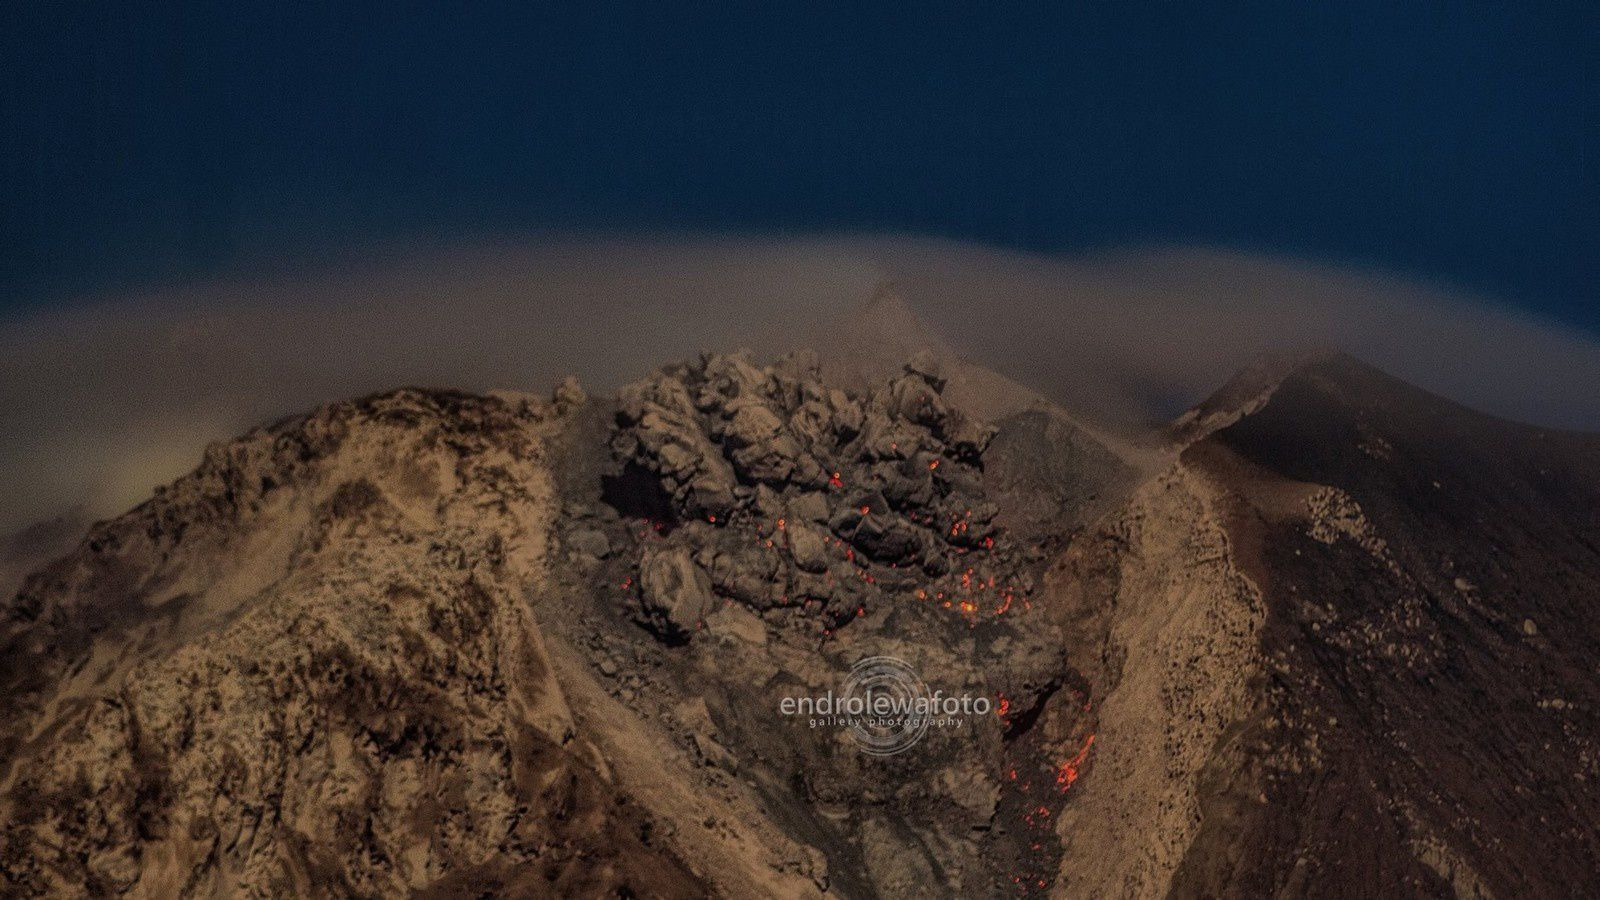 The Sinabung dome, threatening and unstable - the 02.25.2016 / 11:04 p.m. - photo endrolewa